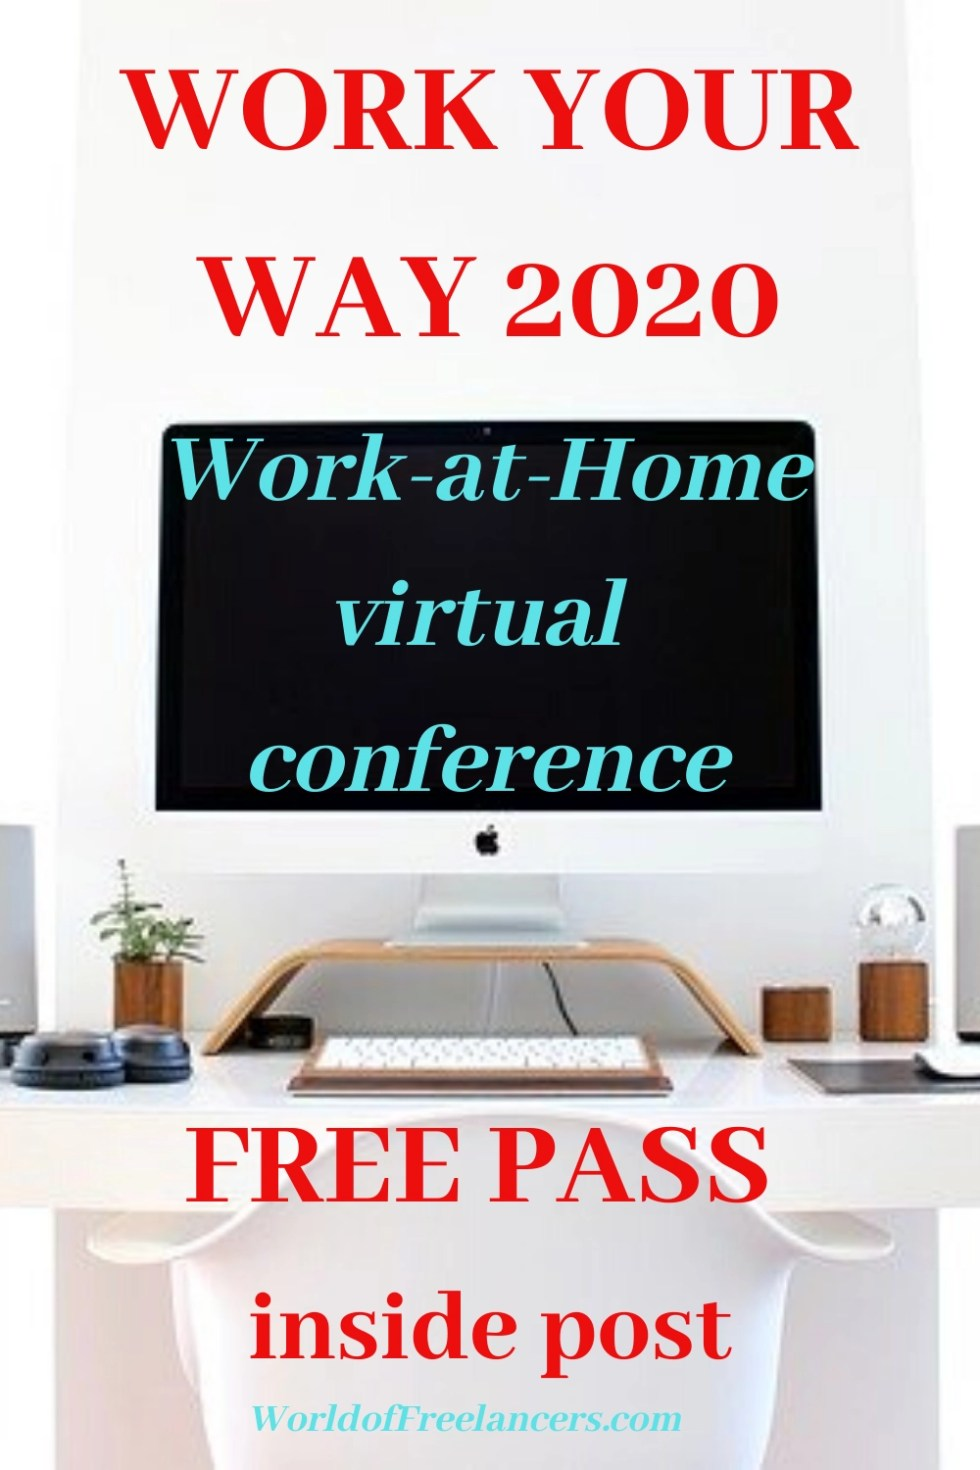 Work Your Way 2020 work-at-home virtual conference free pass inside post